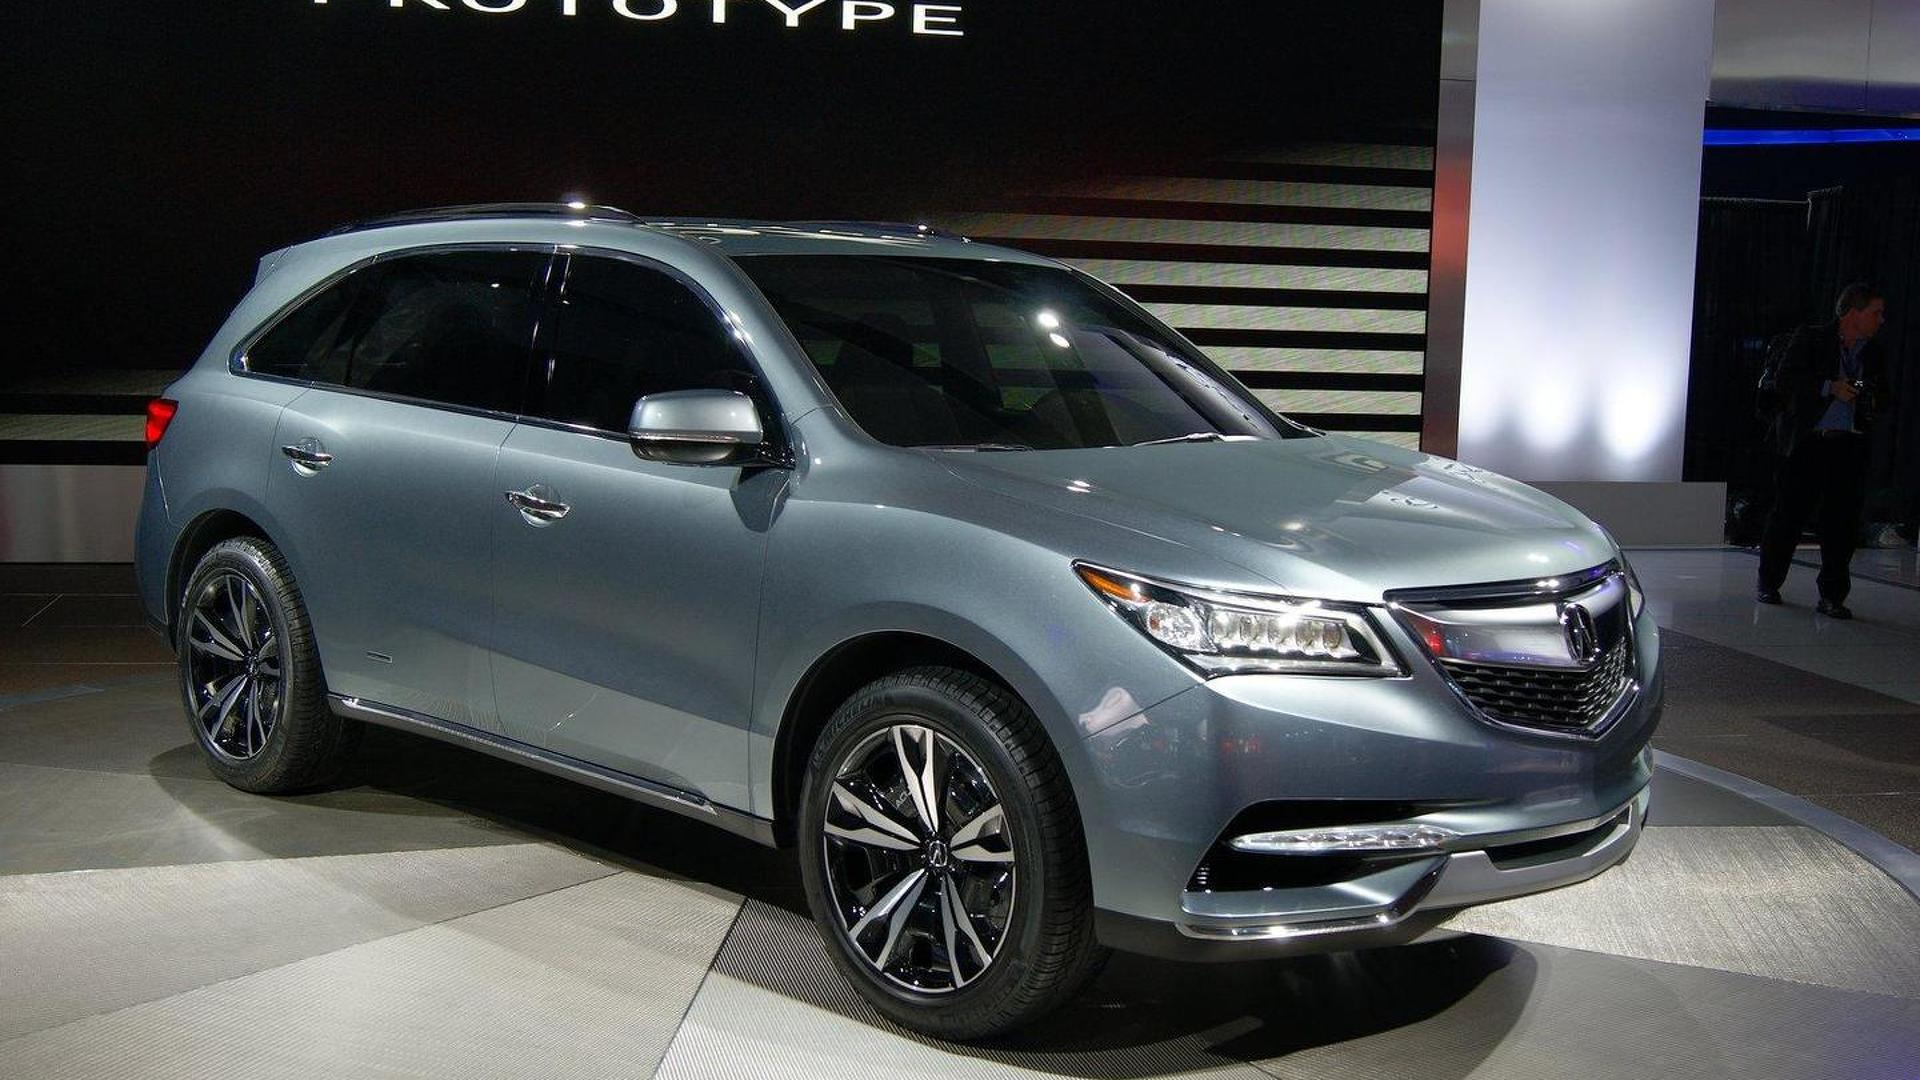 commercial japan will moto york auto the video of mdx new acura show driver